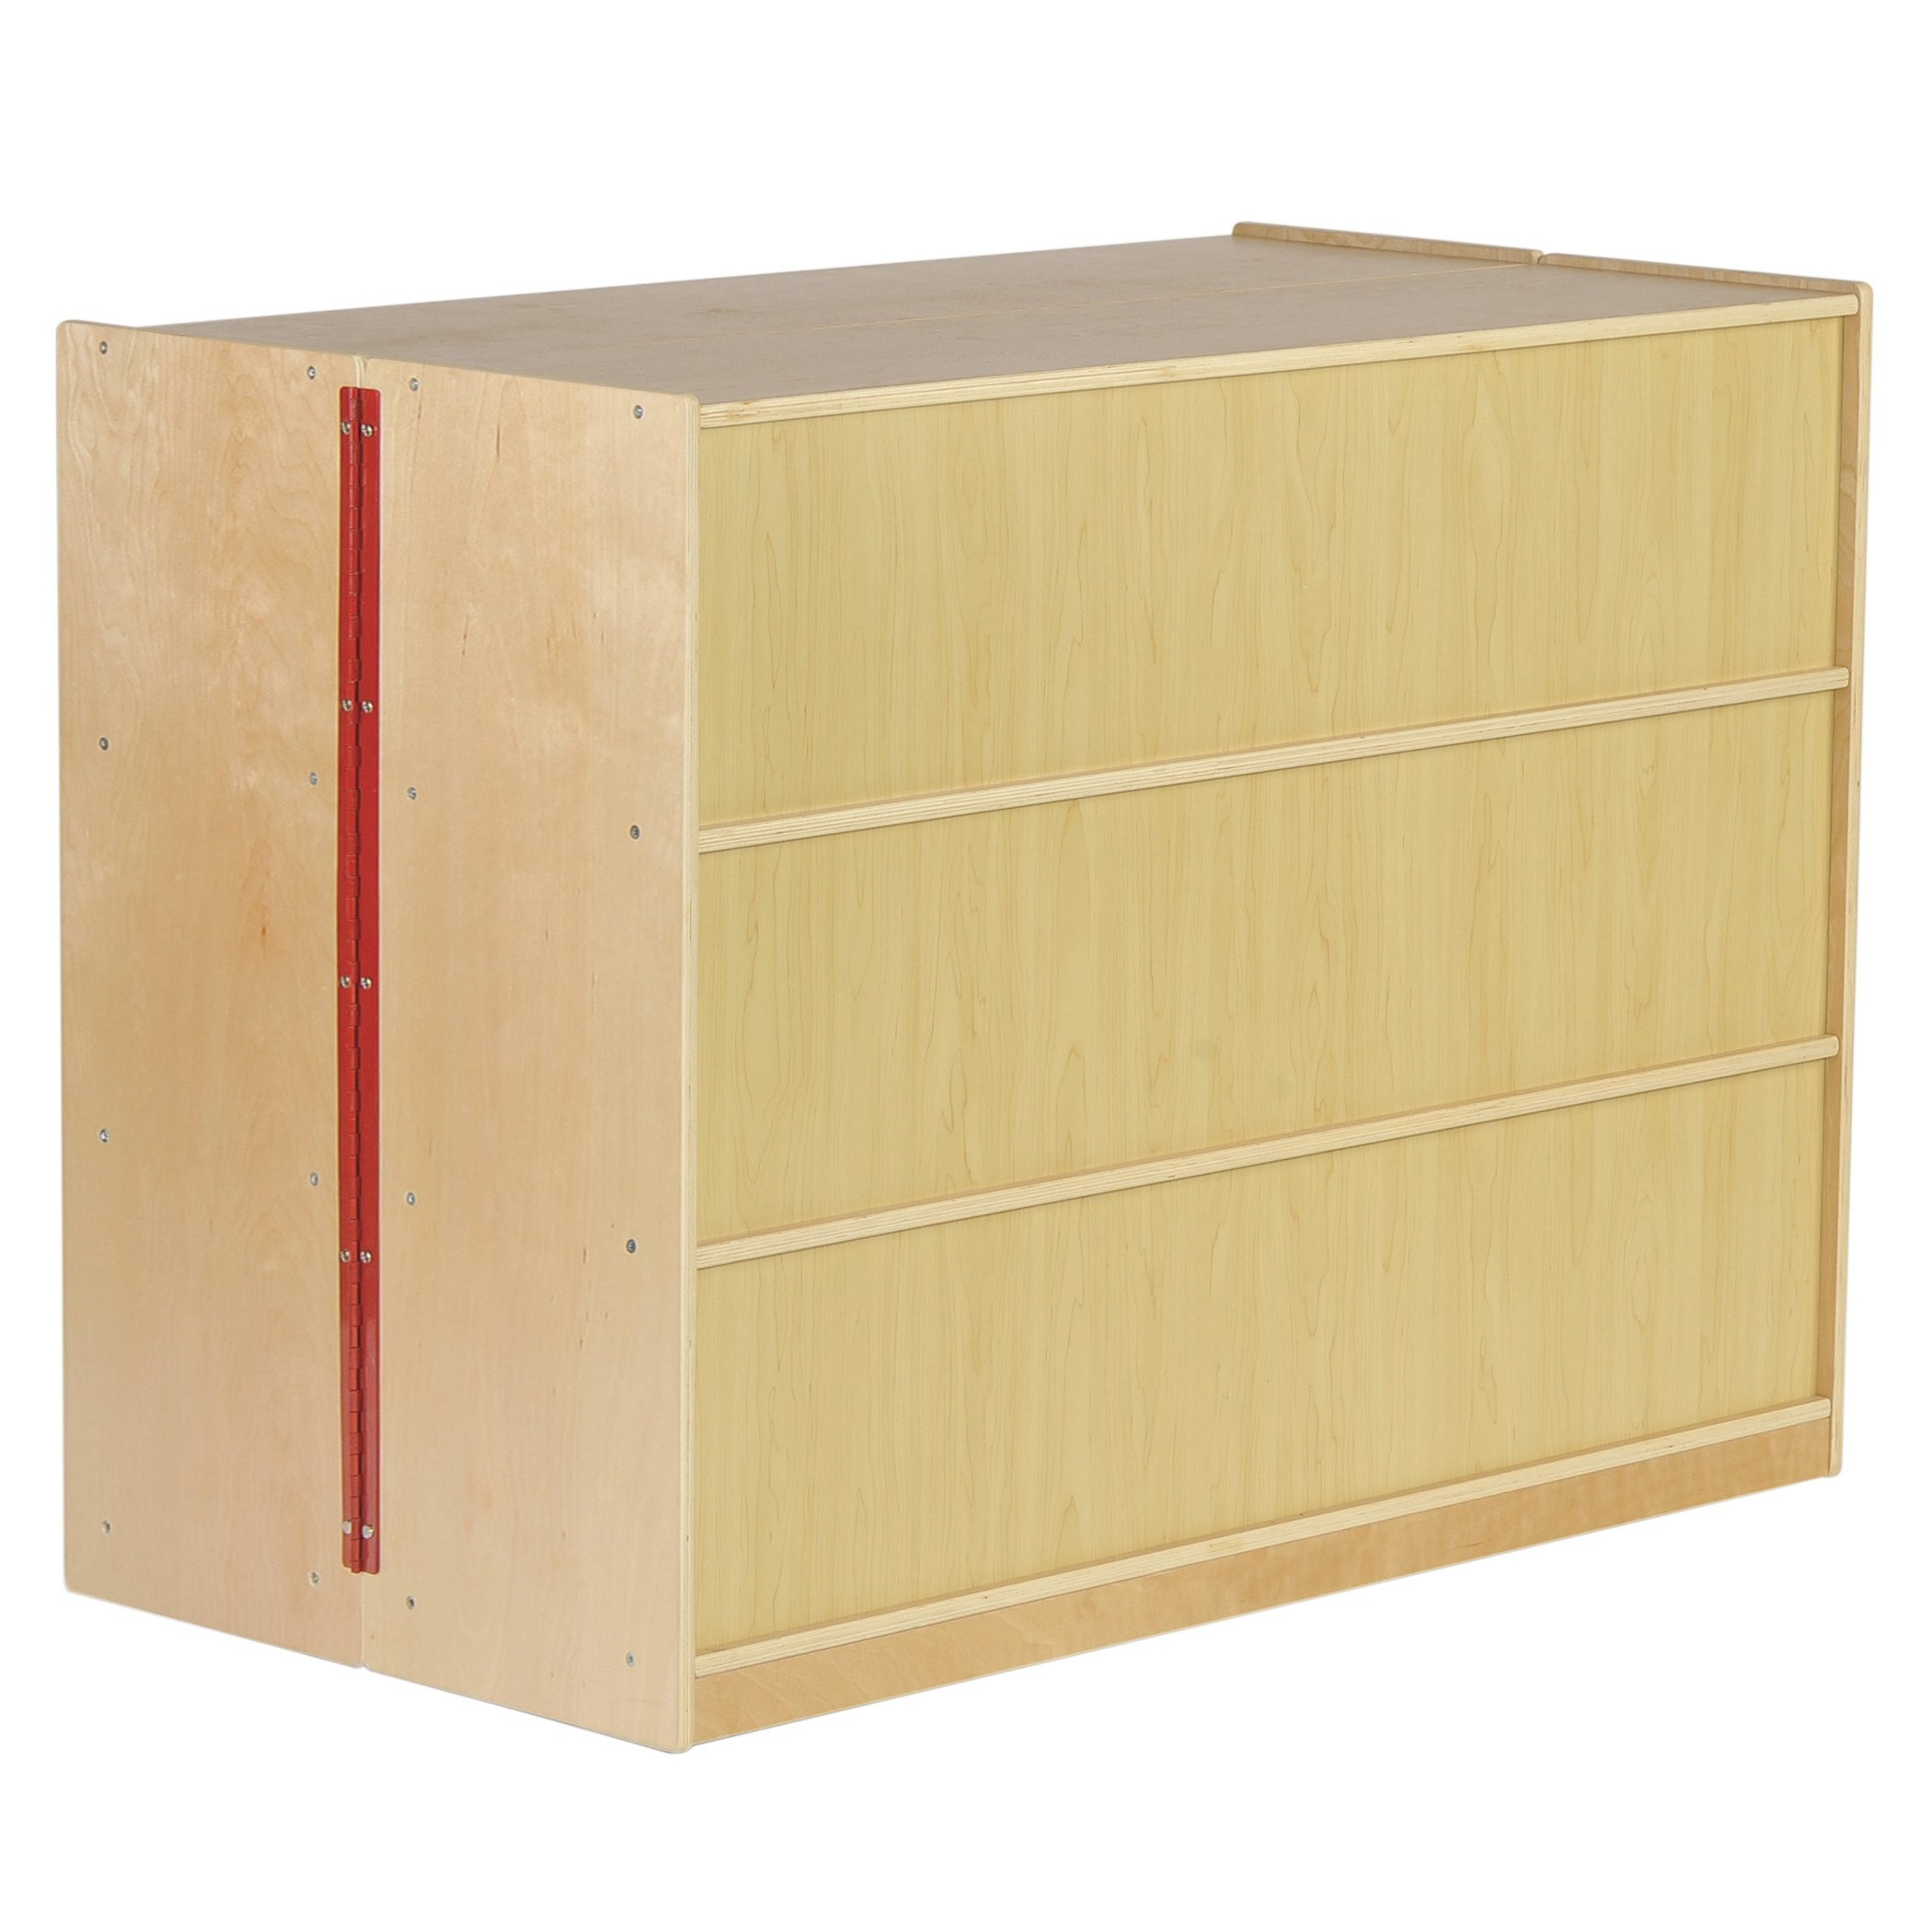 Fold And Lock Storage Cabinetsselfbutler be inspired